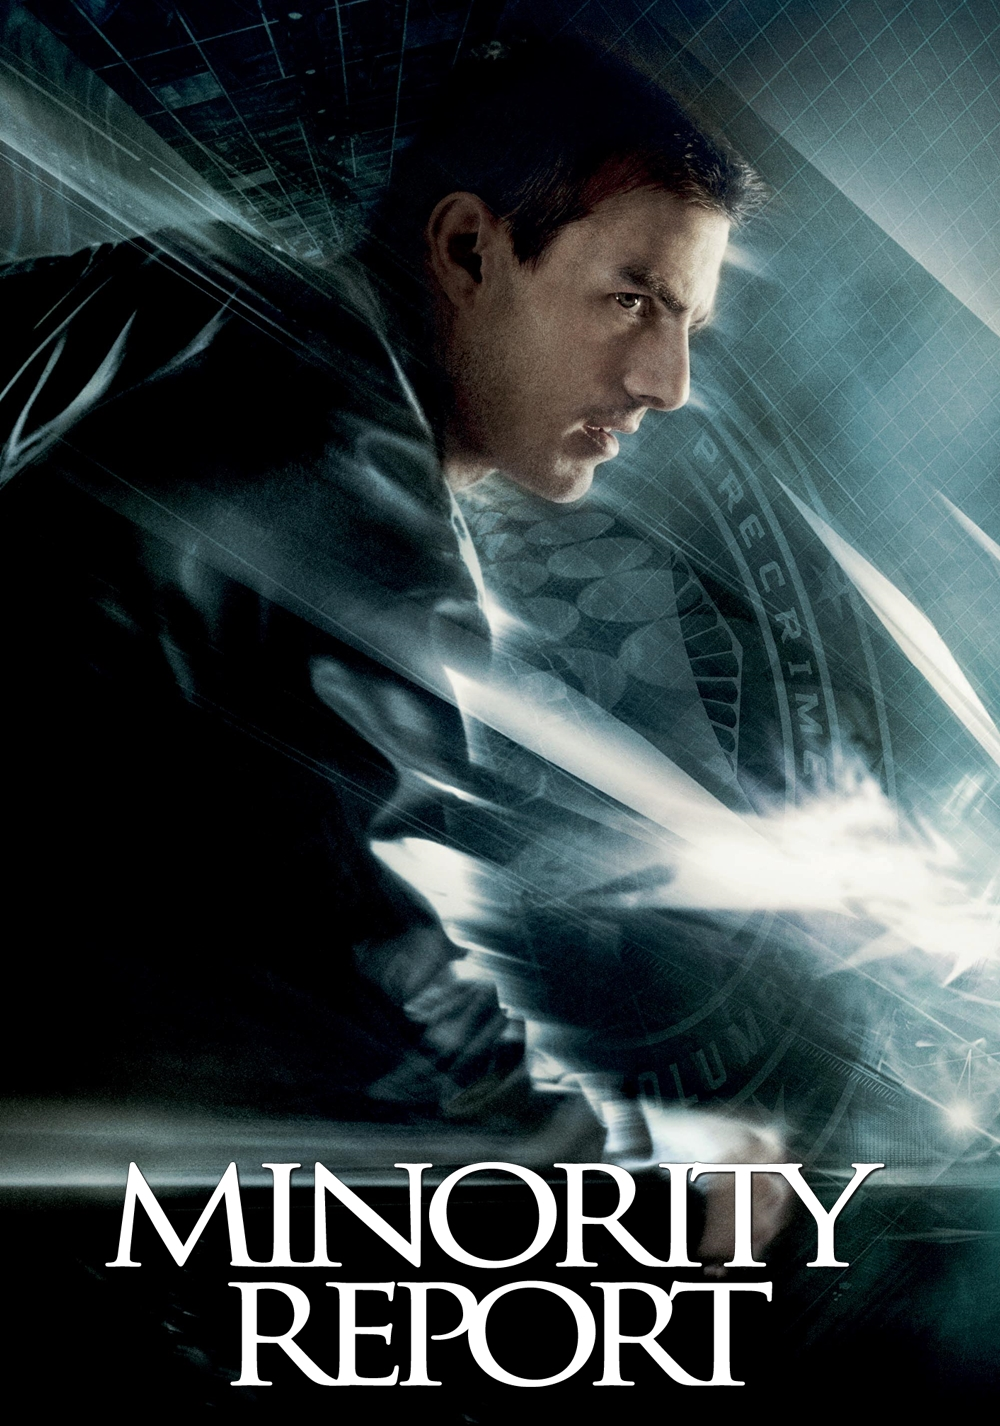 minority-report-52175e8dcd40a